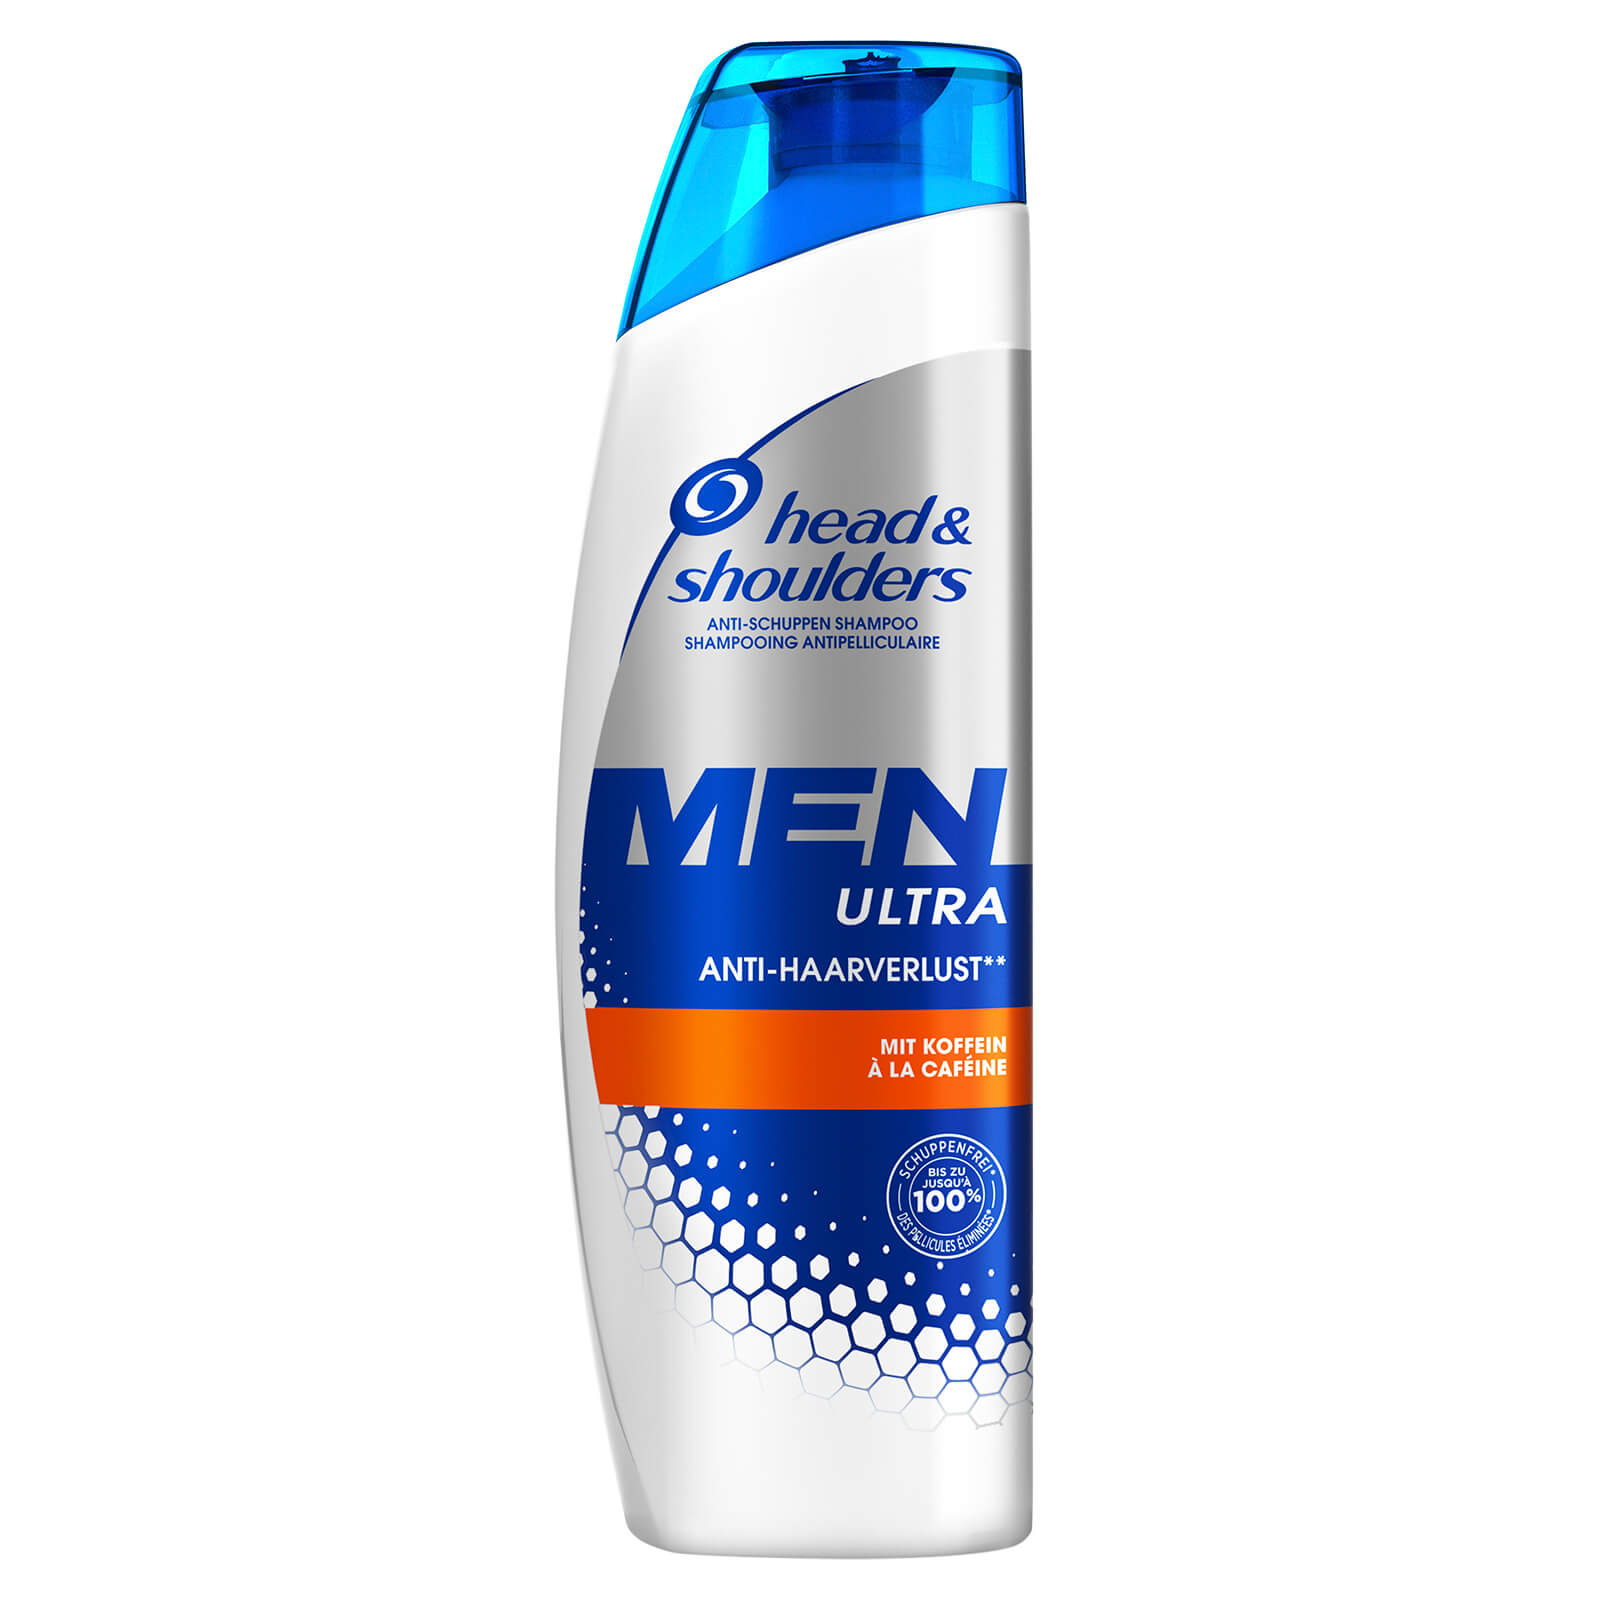 Men Ultra Anti-Haarverlust Shampoo